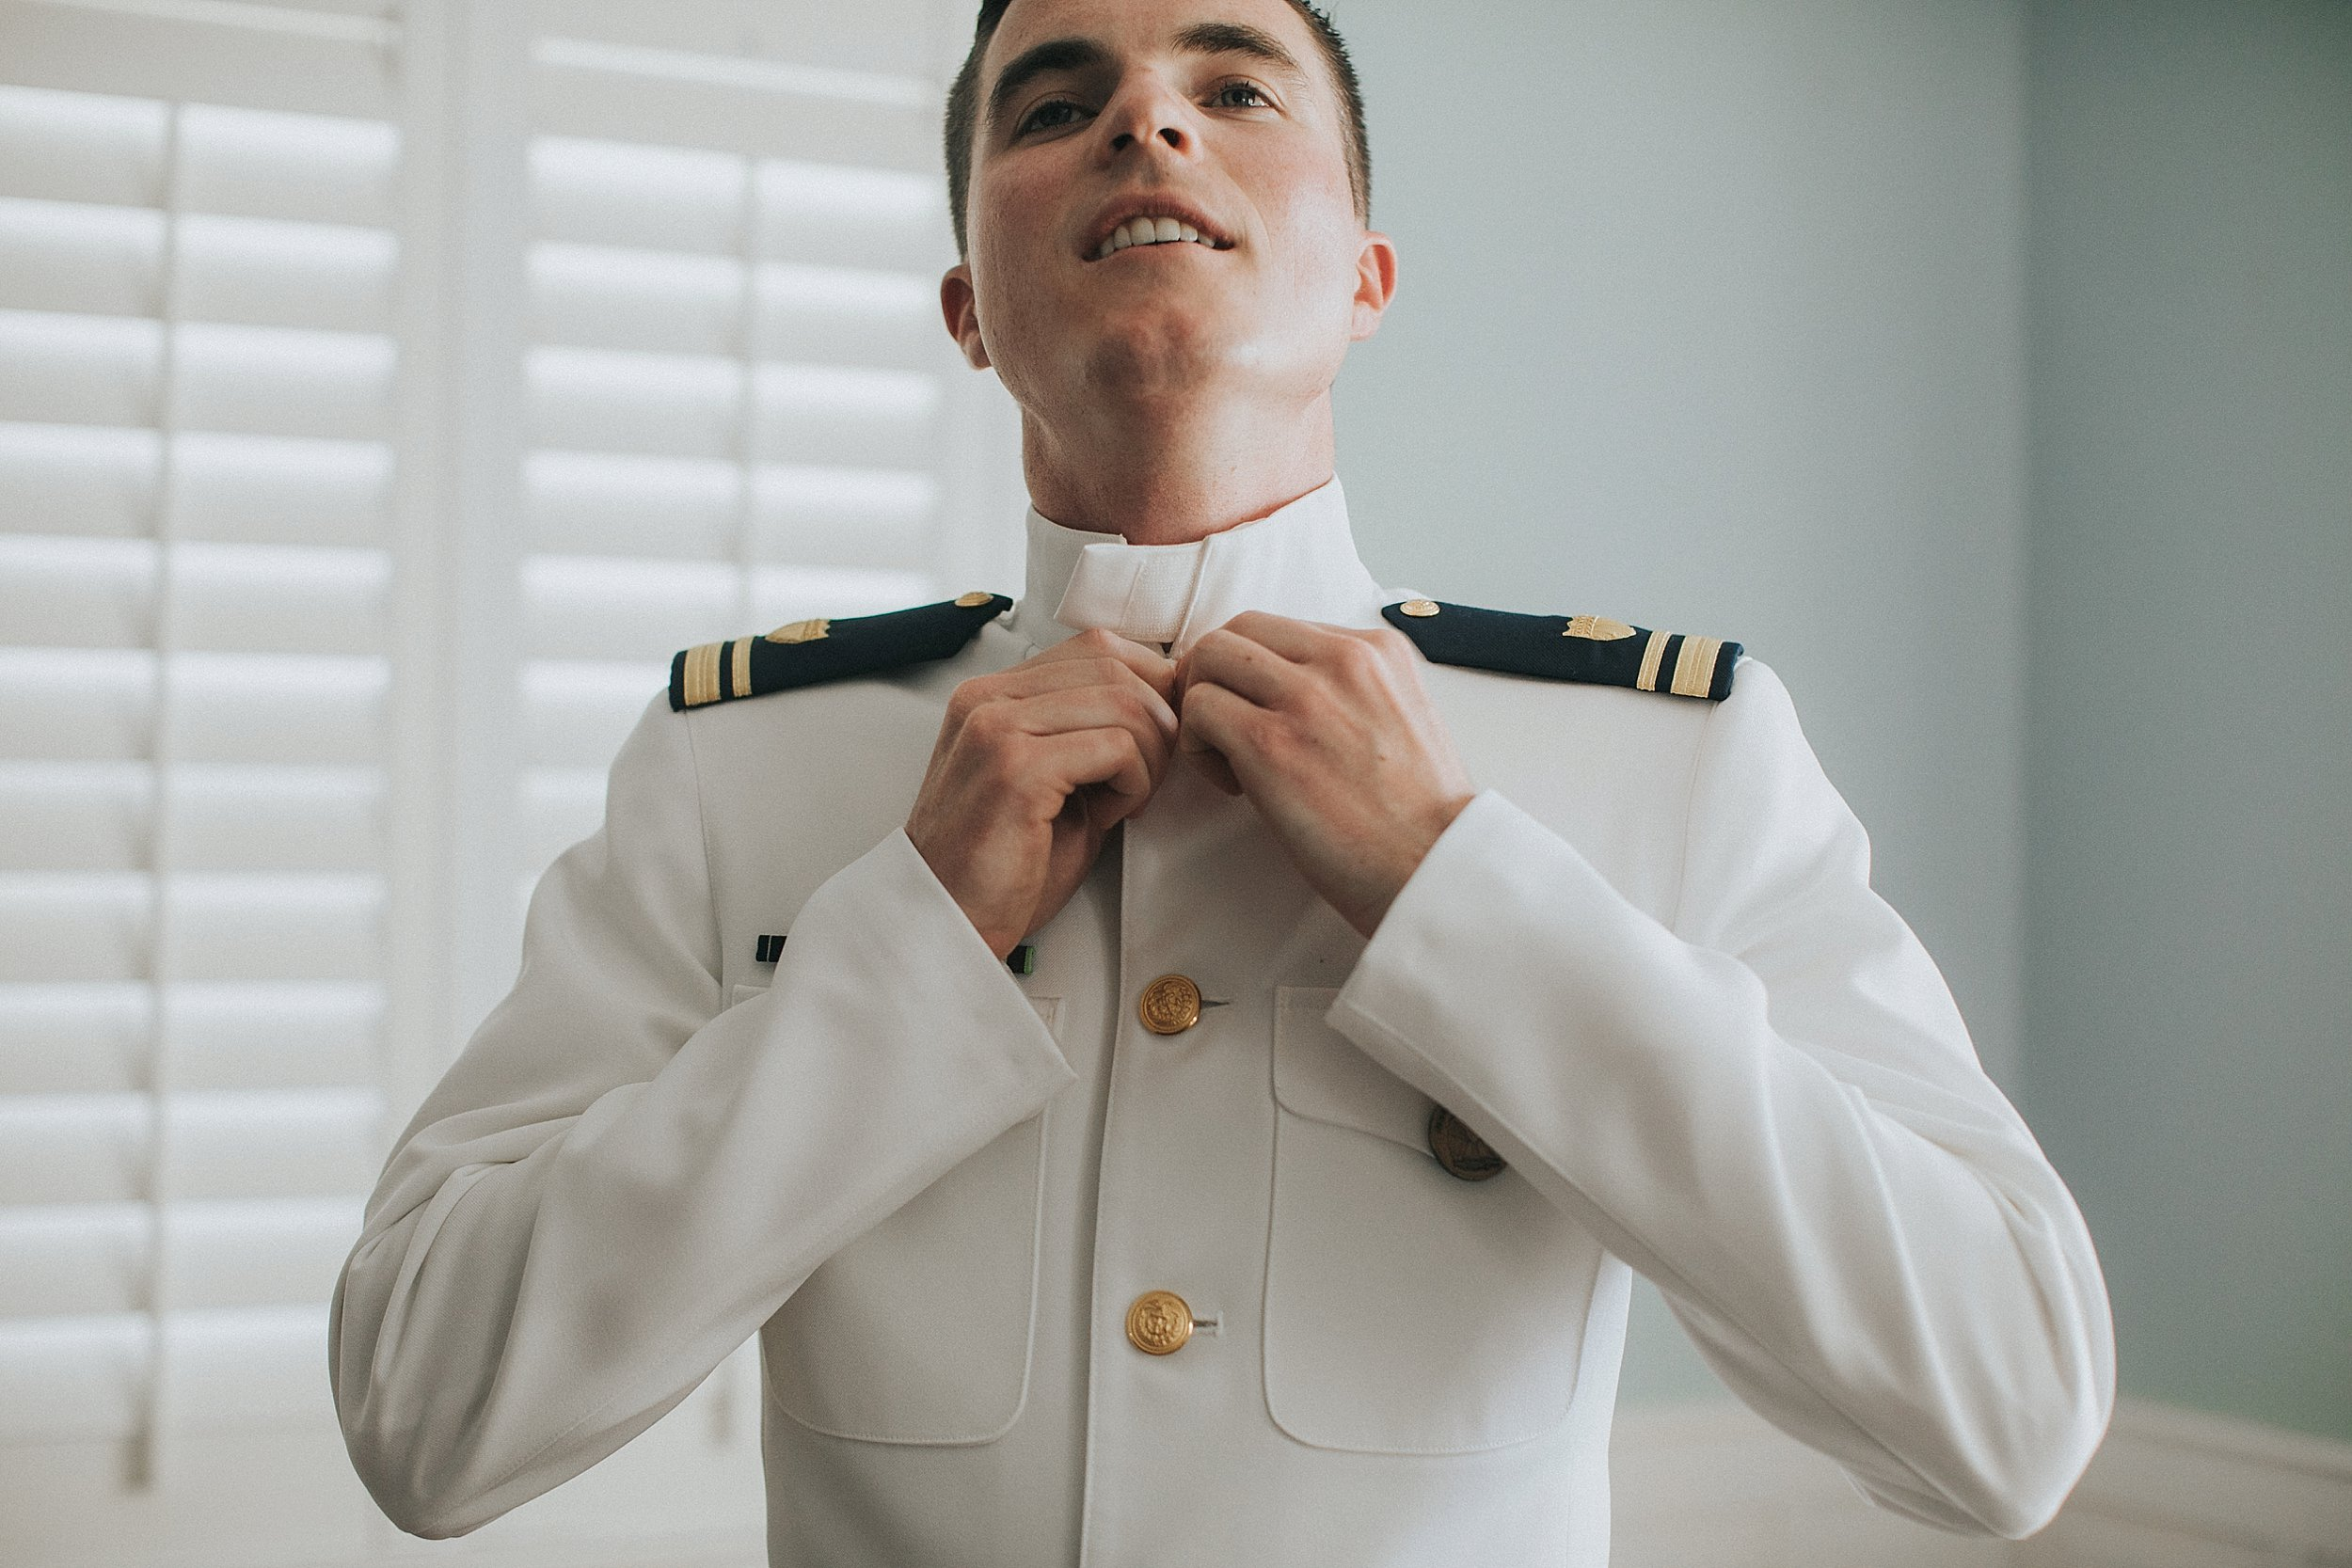 hillsboro club coast guard wedding